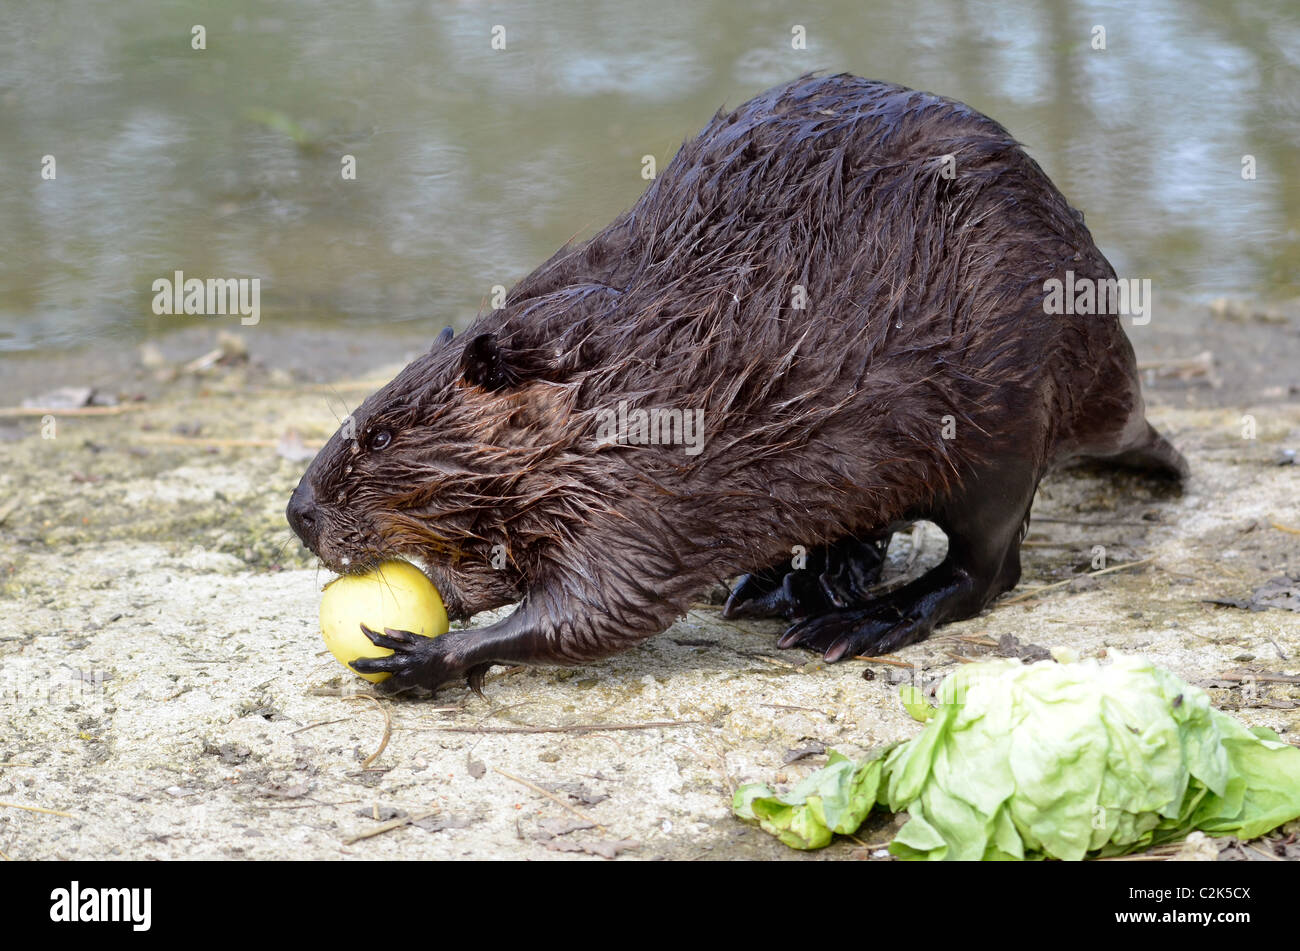 North American Beaver (Castor canadensis), view of profile, and eating apple on the bank of pond Stock Photo